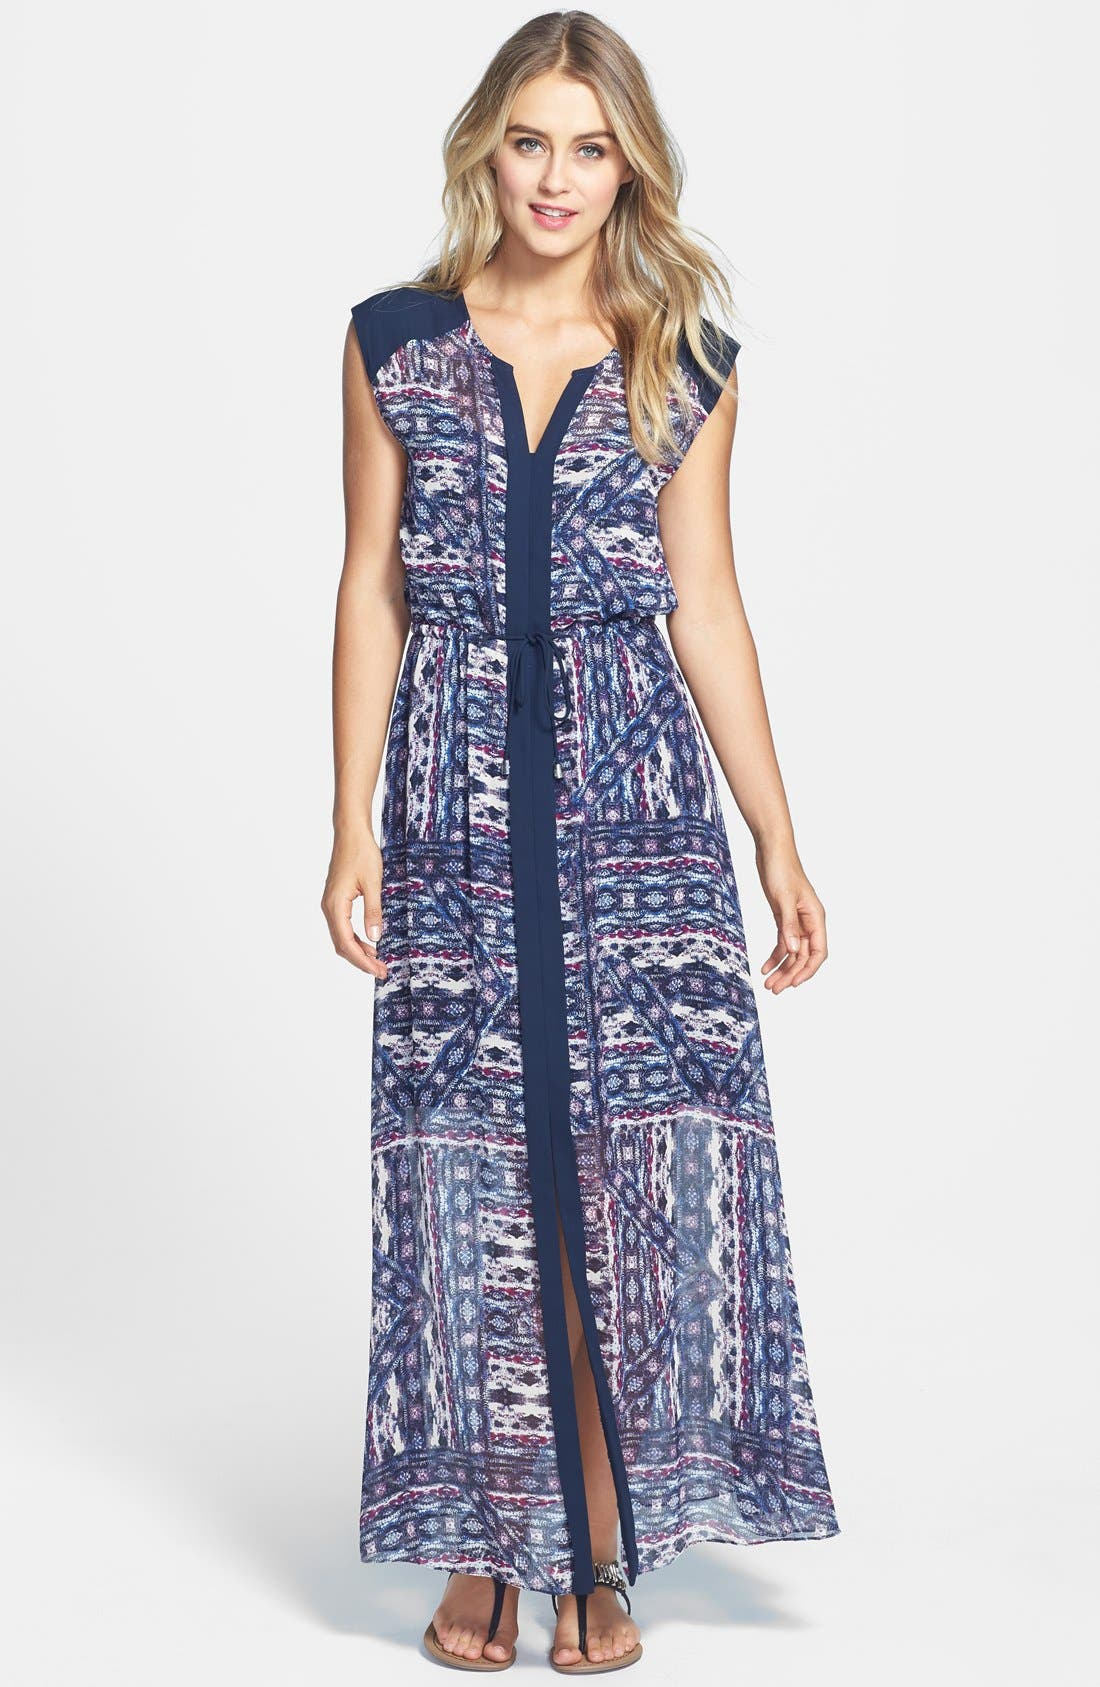 Main Image - Vince Camuto 'Tribal Patchwork' Tie Waist Maxi Dress (Regular & Petite)